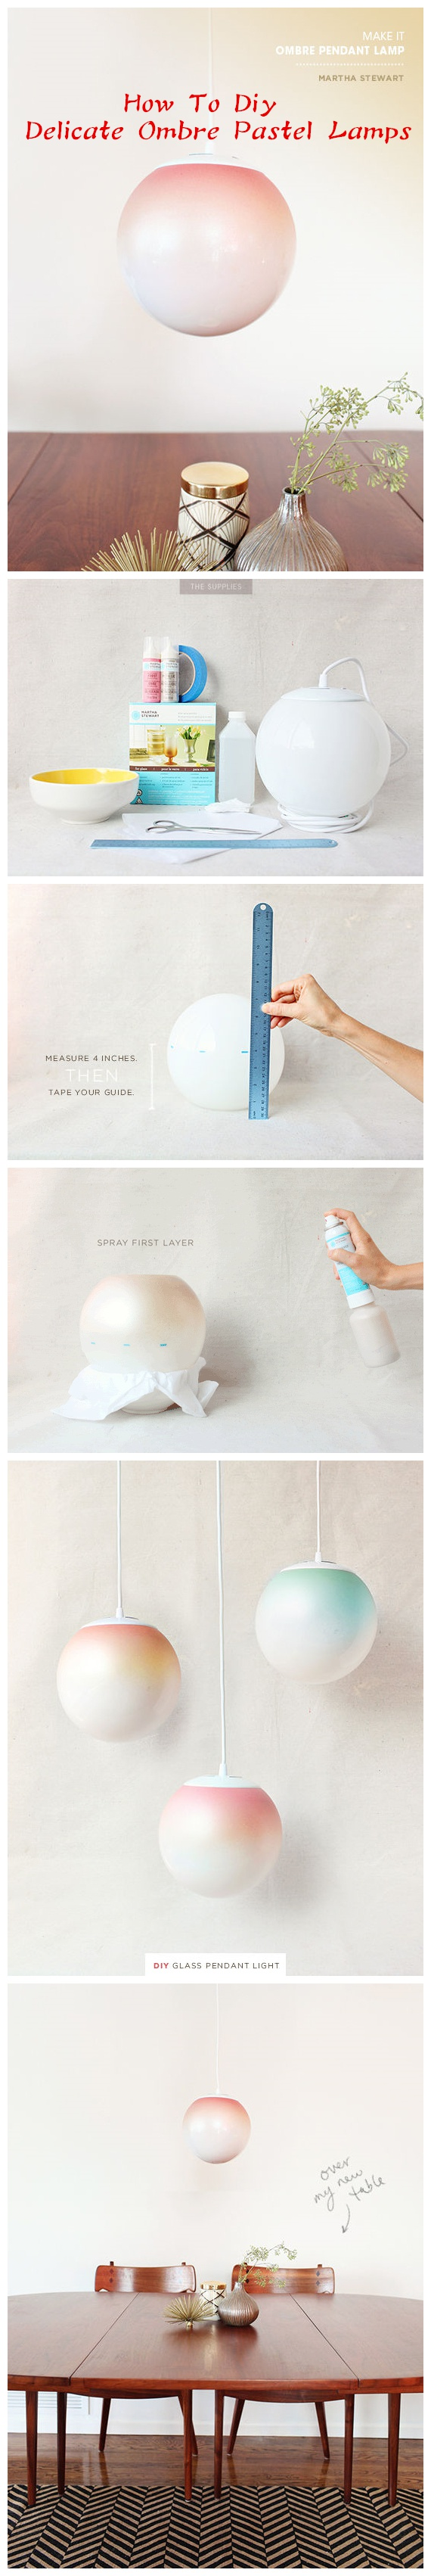 How To Diy Delicate Ombre Pastel Lamps